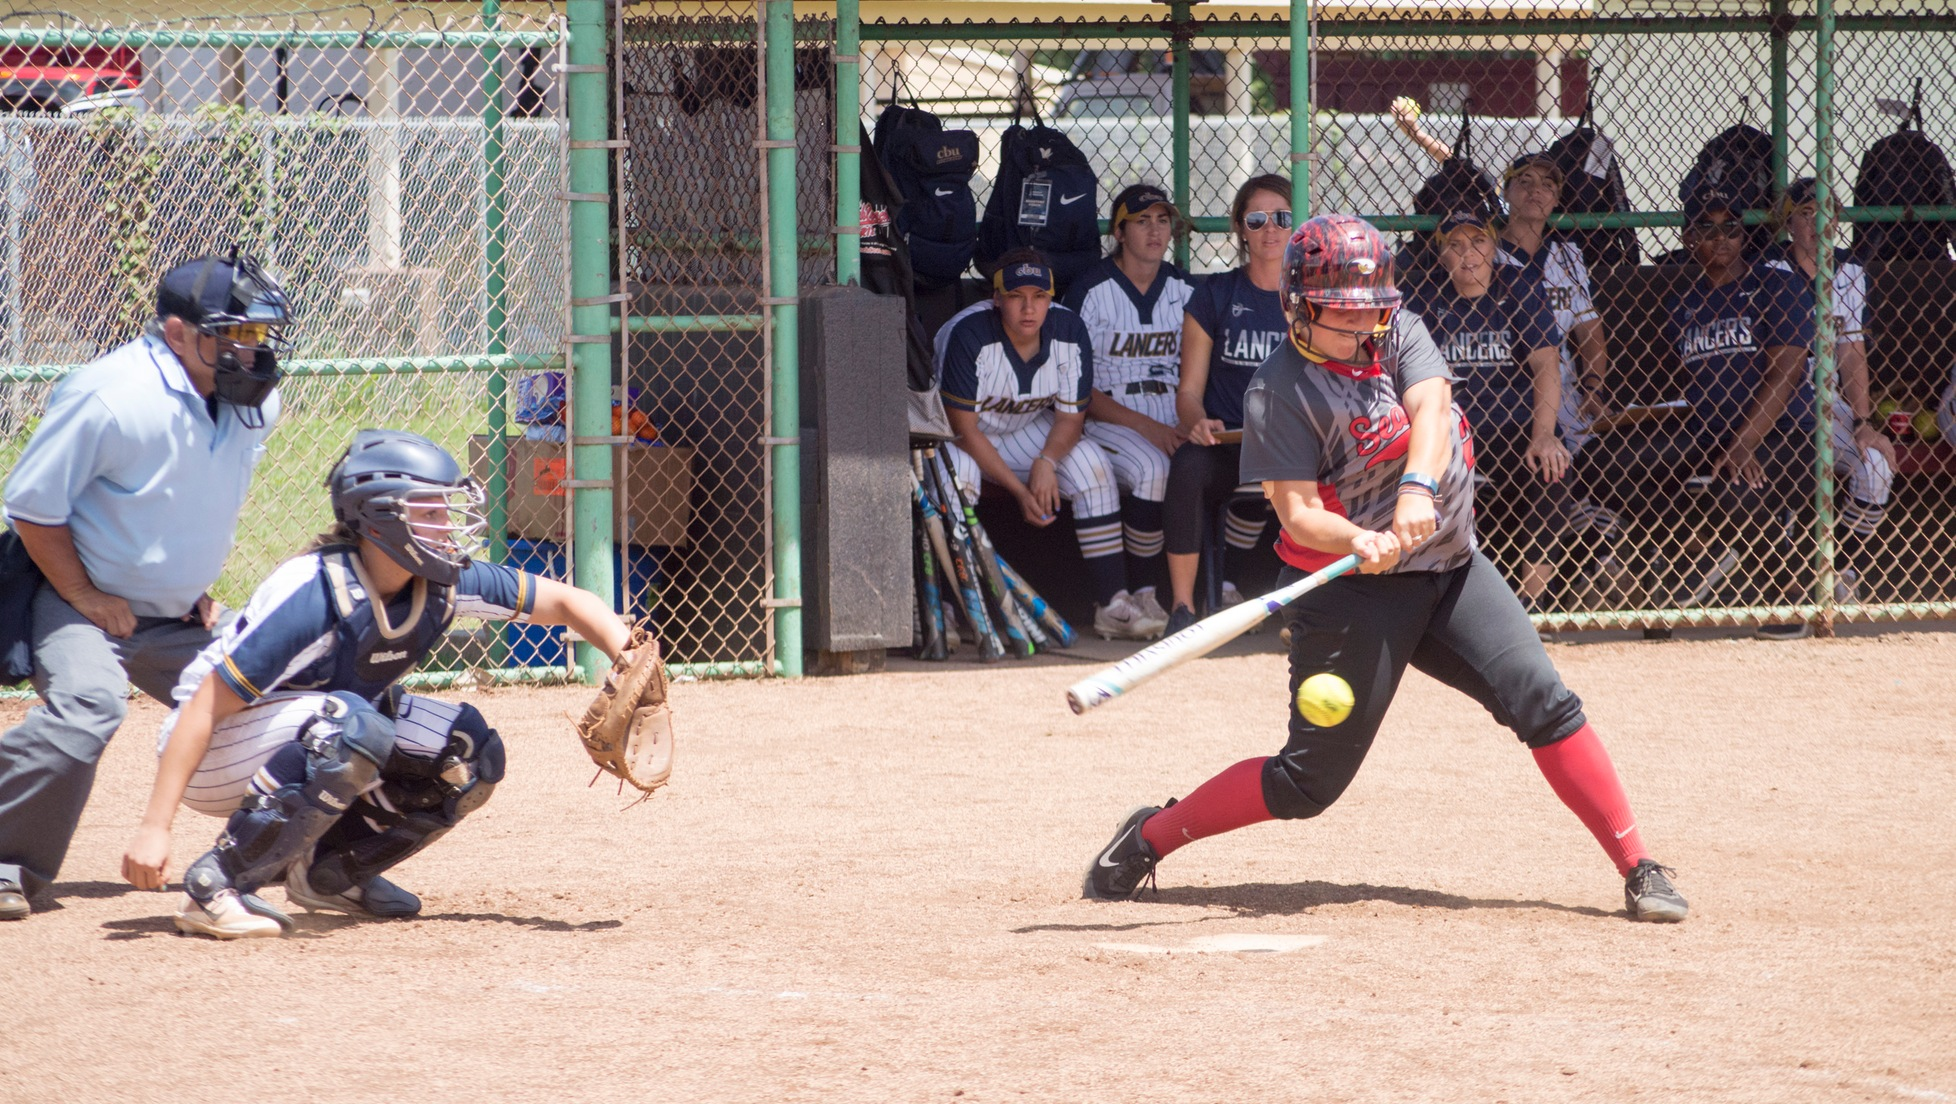 Seasiders swept by Lancers (Game 1)